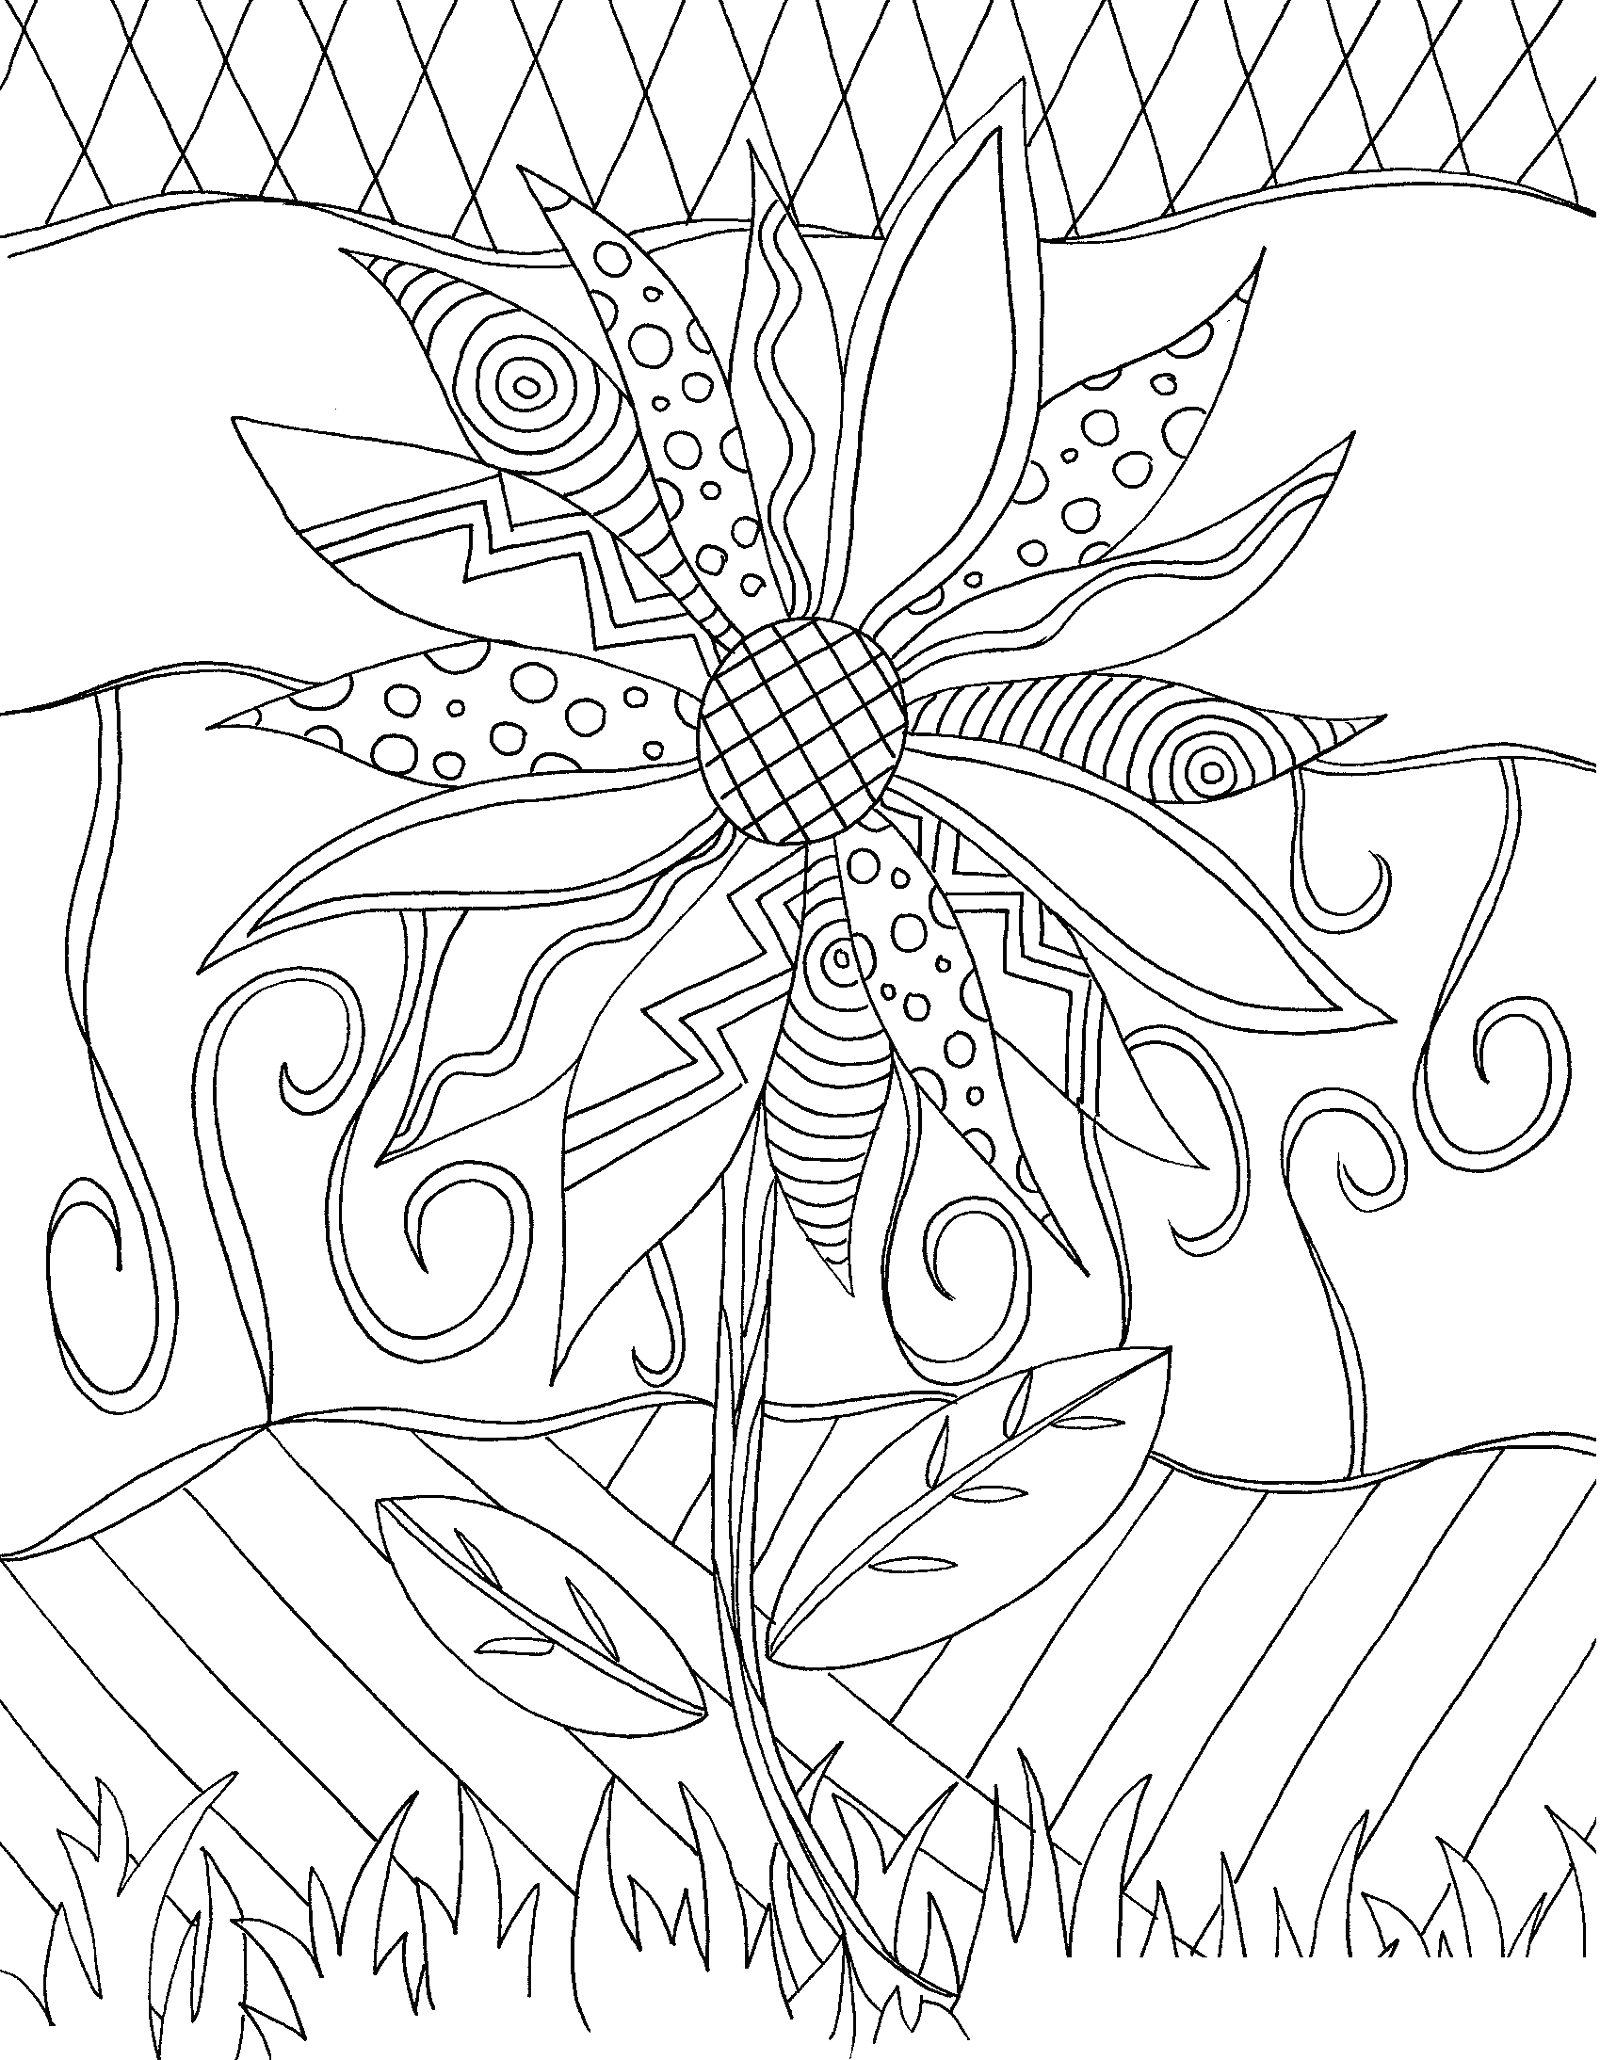 Free Printable Coloring Pages for Adults and Kids Cool Coloring Pages for Adults